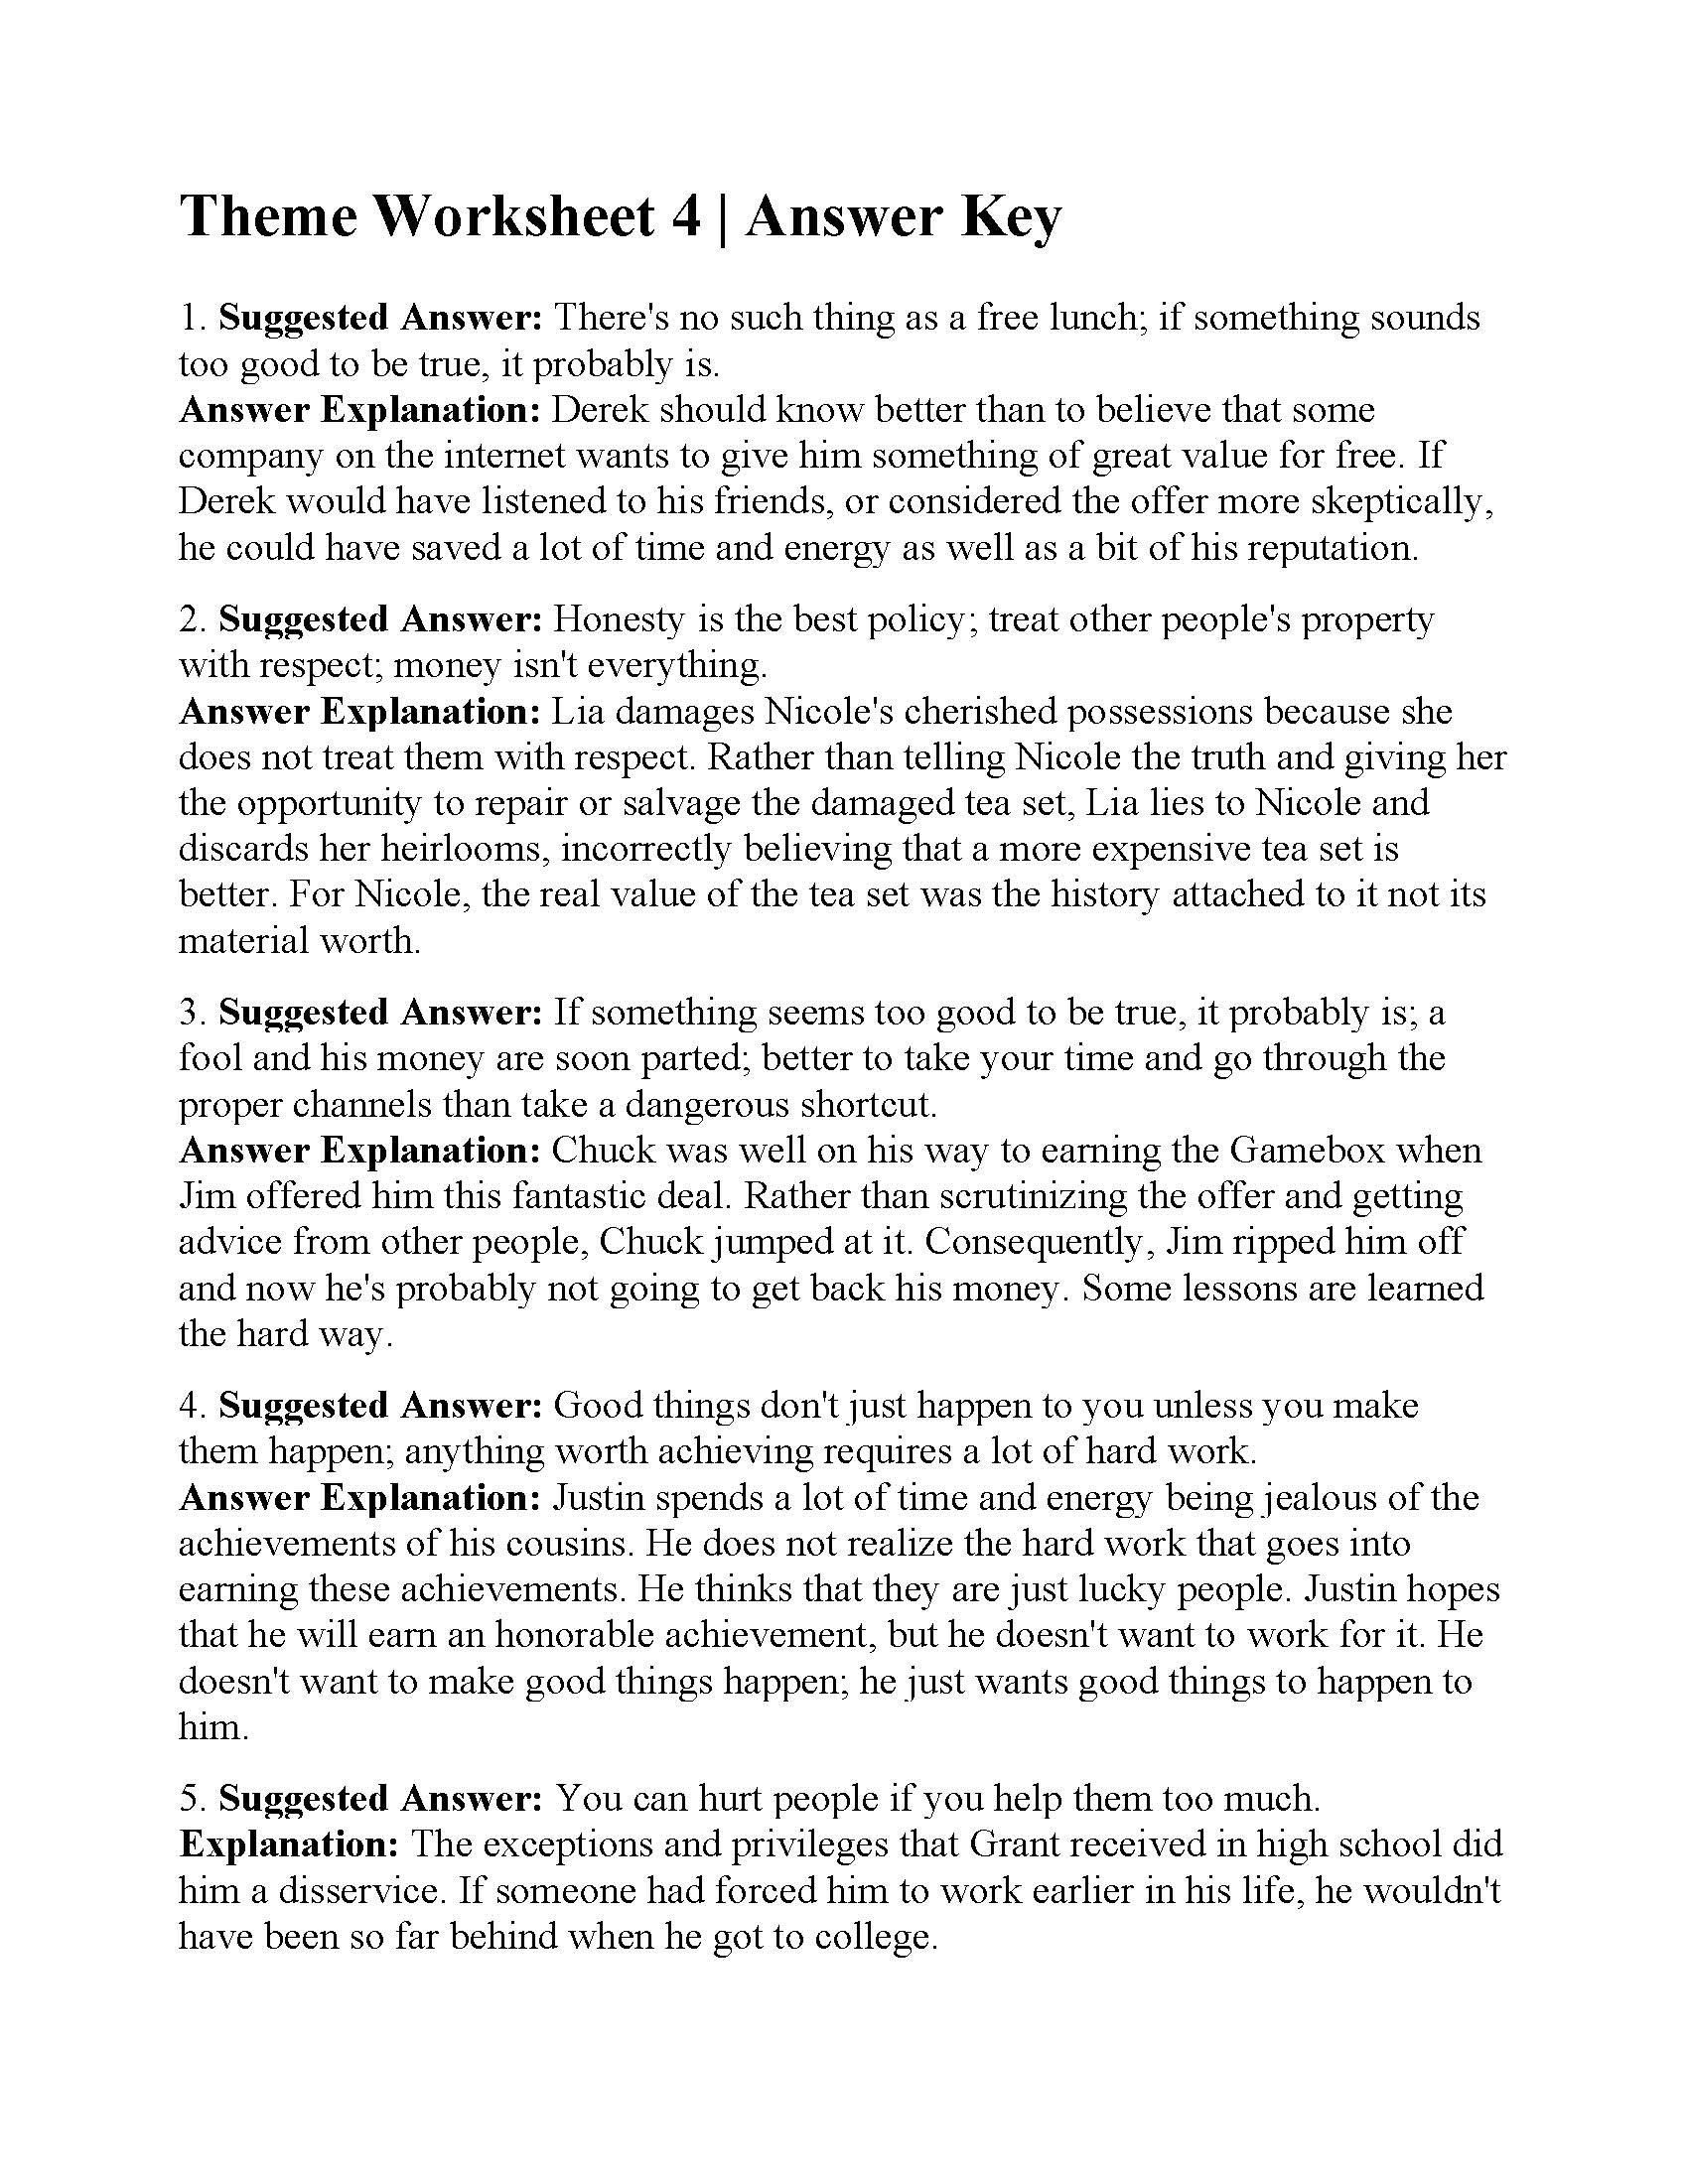 5th Grade Theme Worksheets Theme Worksheet 4 In 2020 Worksheets Main Idea Worksheet Worksheet Template